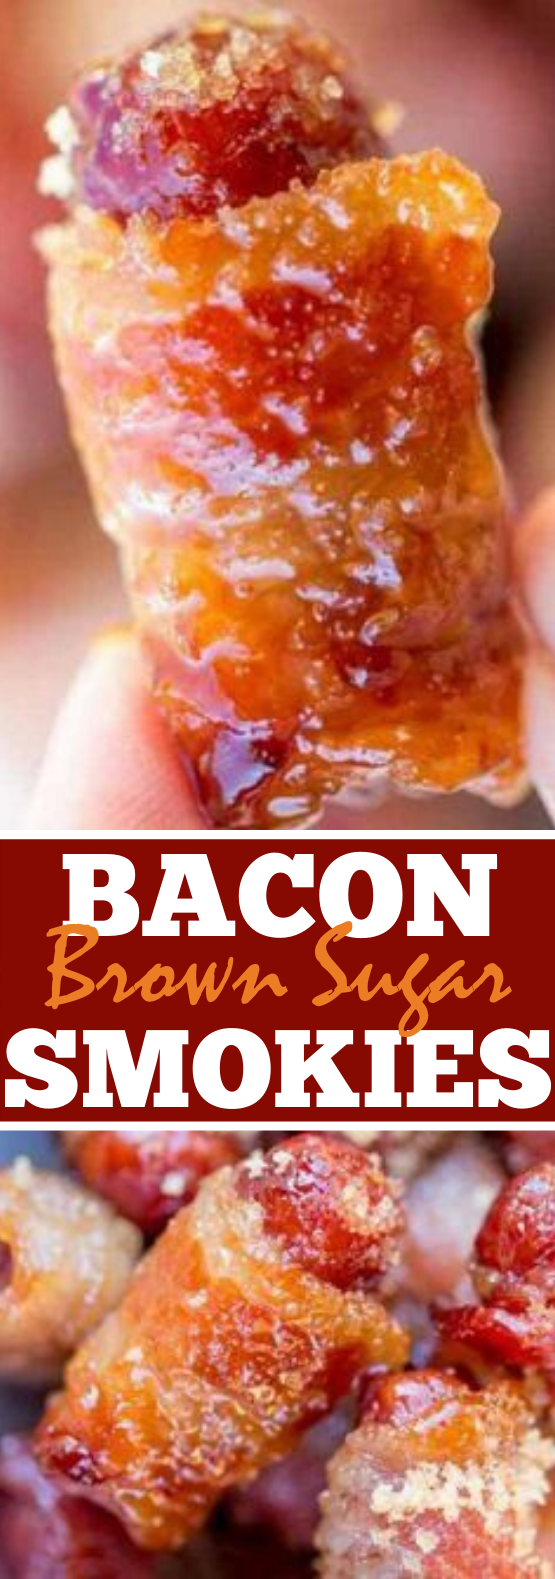 Bacon Brown Sugar Smokies #appetizers #partyfood #easy #recipes #bacon